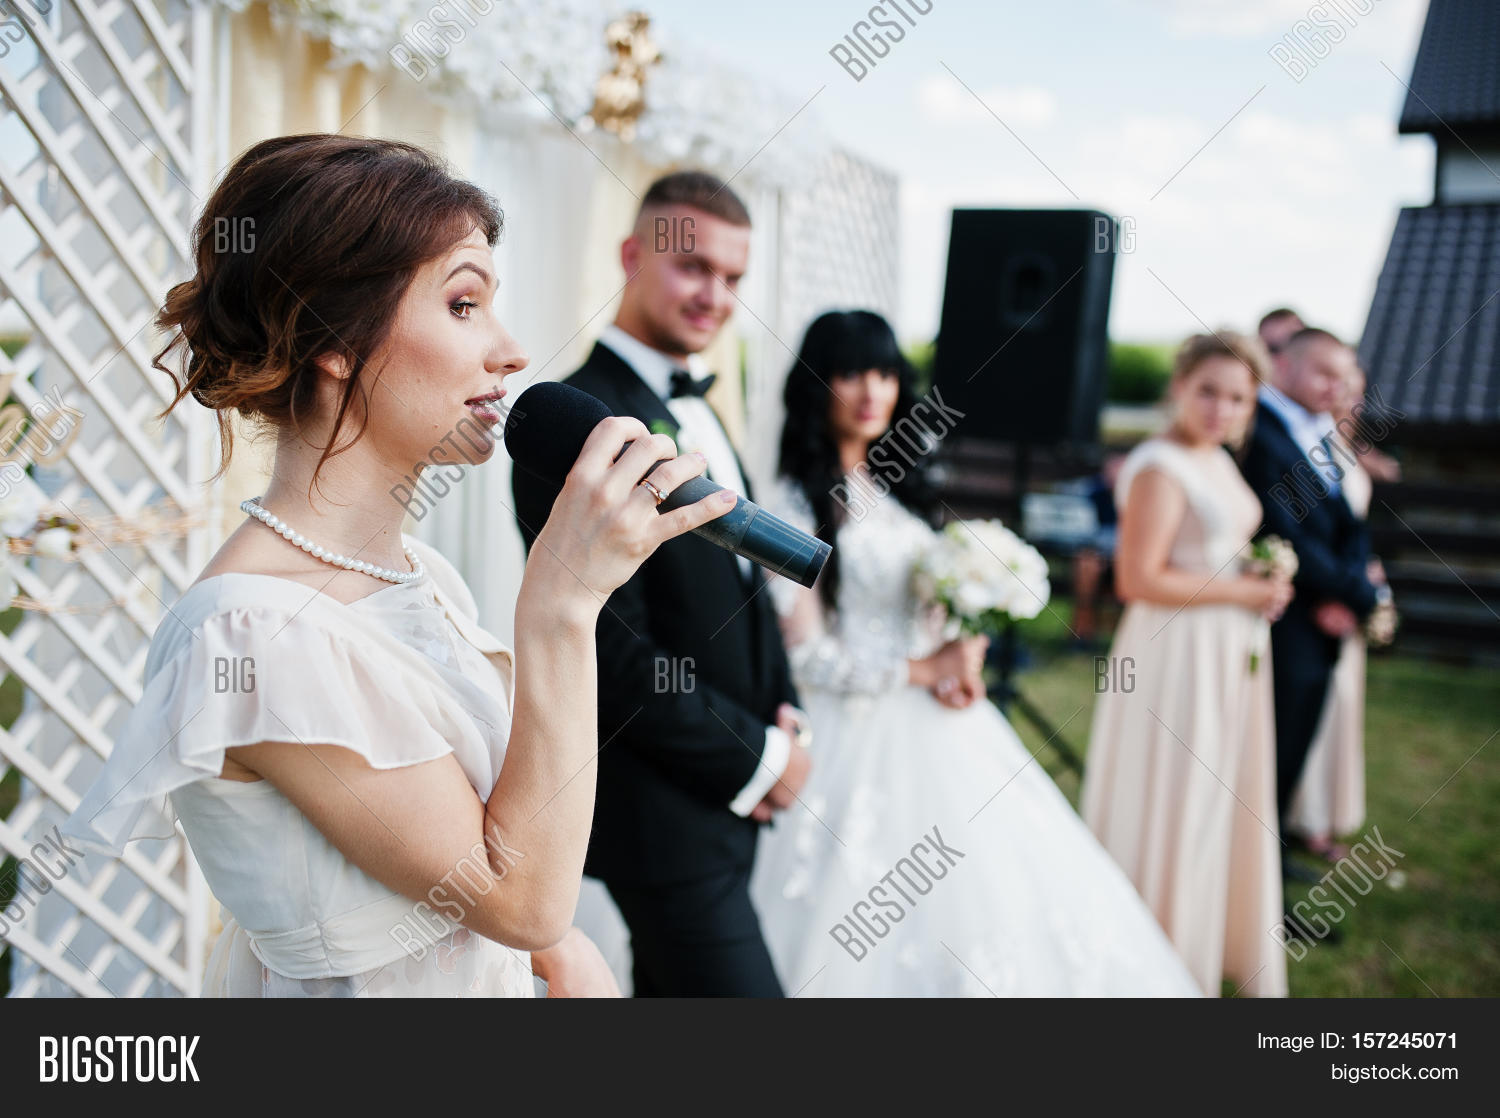 Master Of Ceremony Sch On Microphone Background Wedding